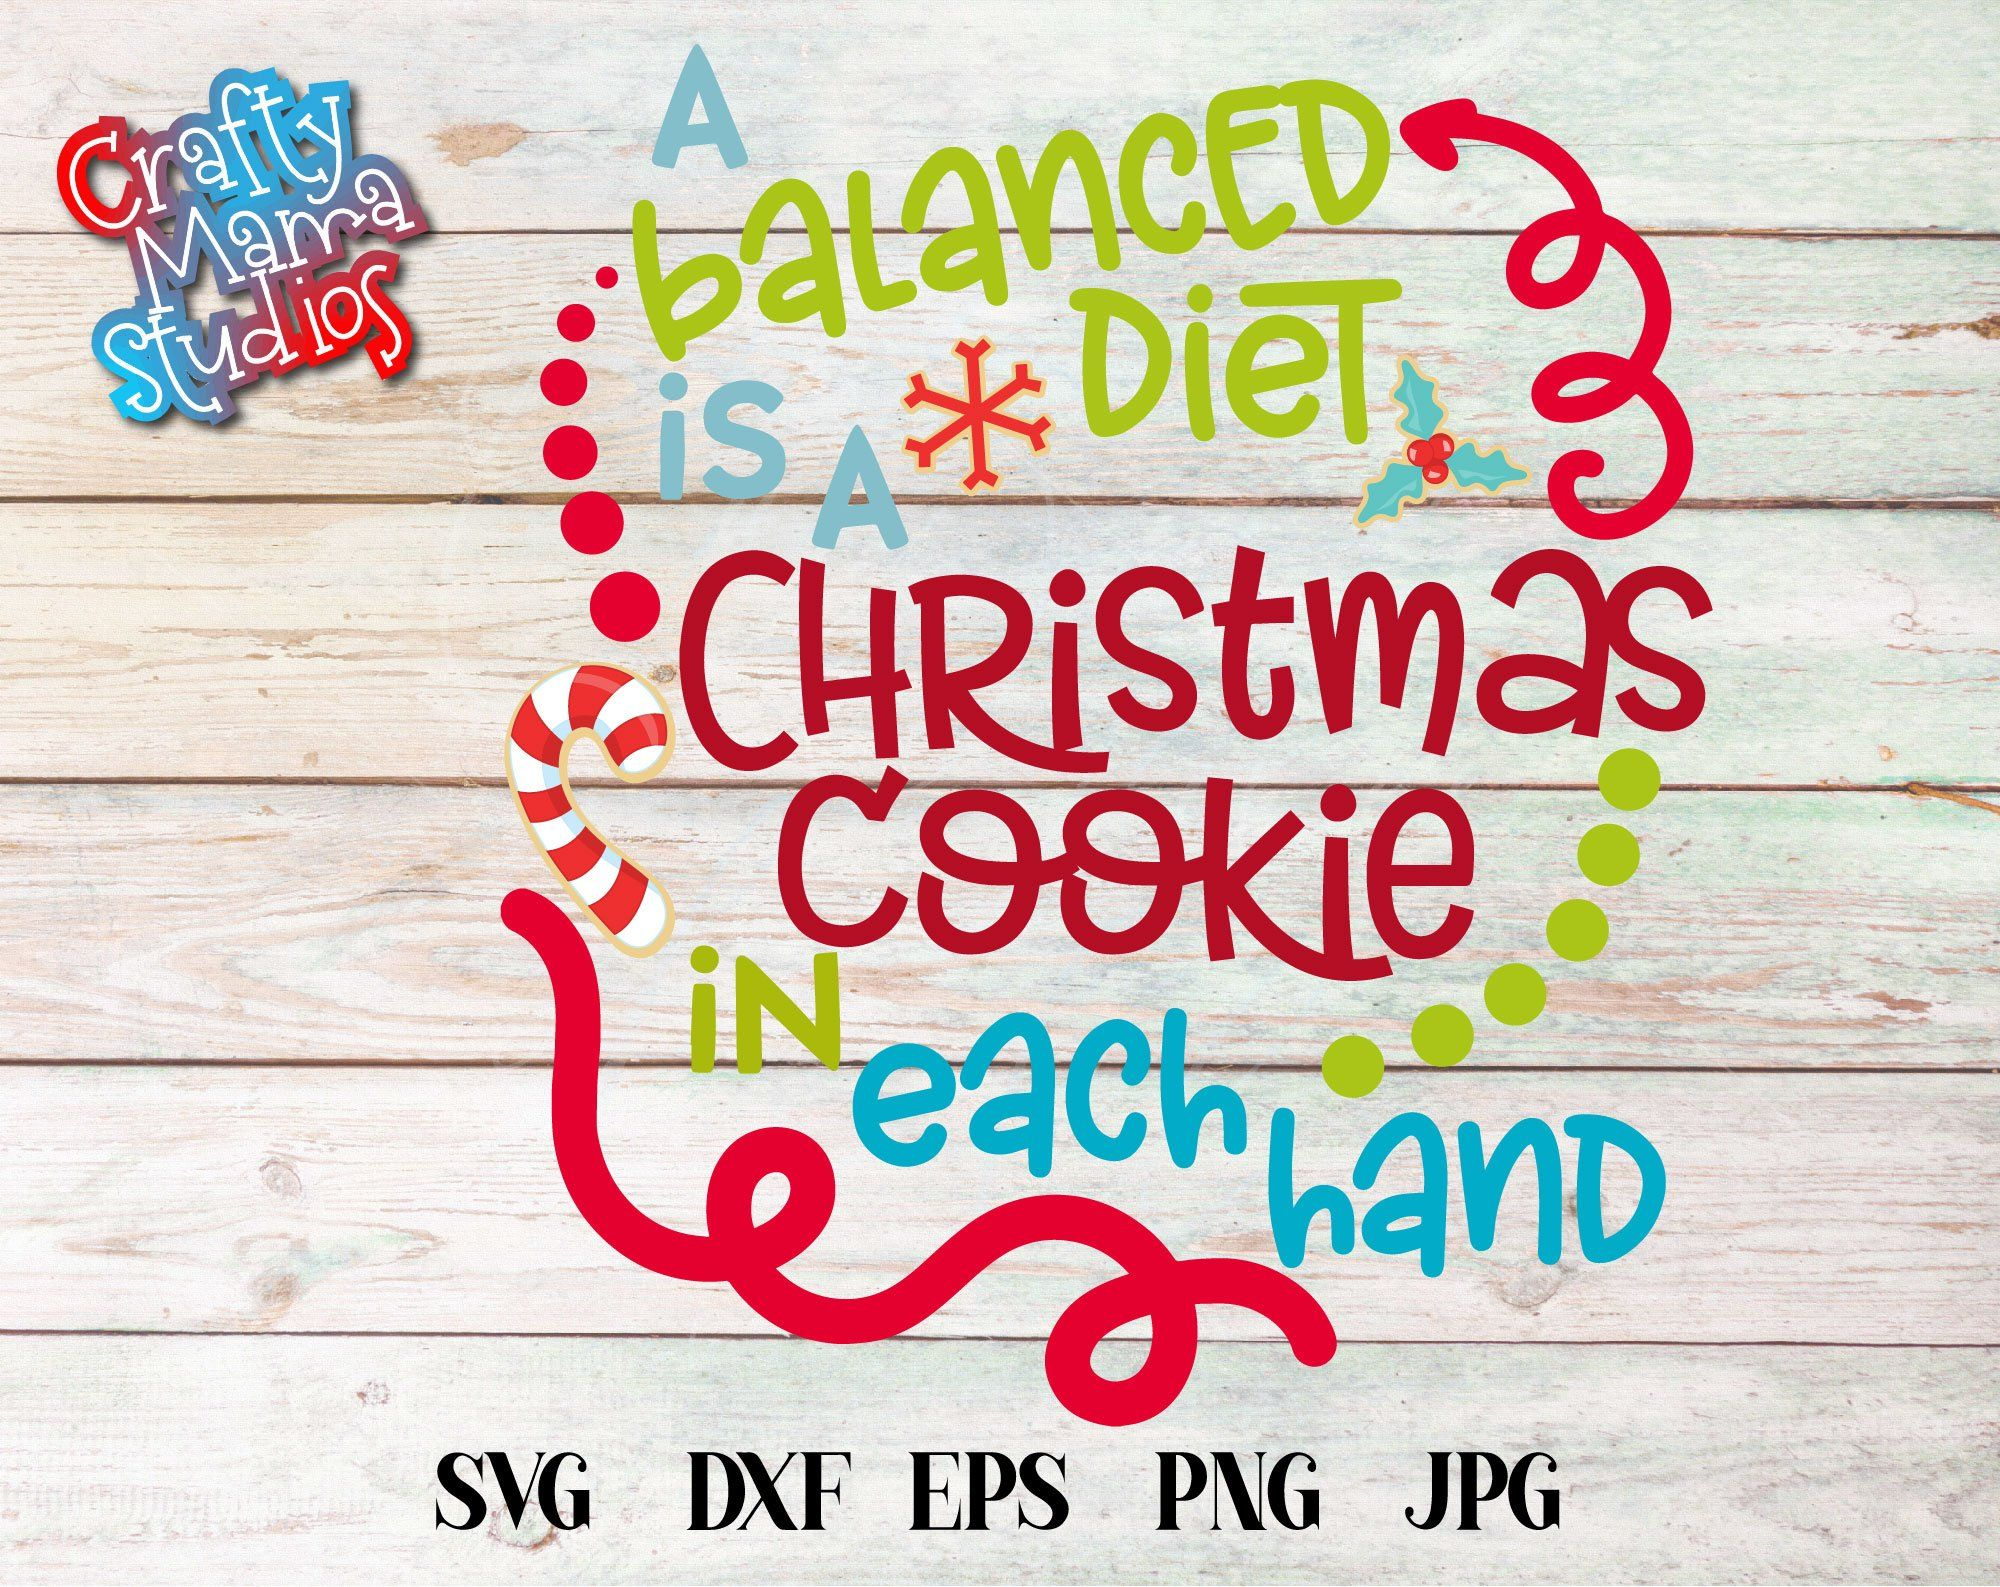 A Balanced Diet Is A Christmas Cookie In Each Hand, Christmas SVG